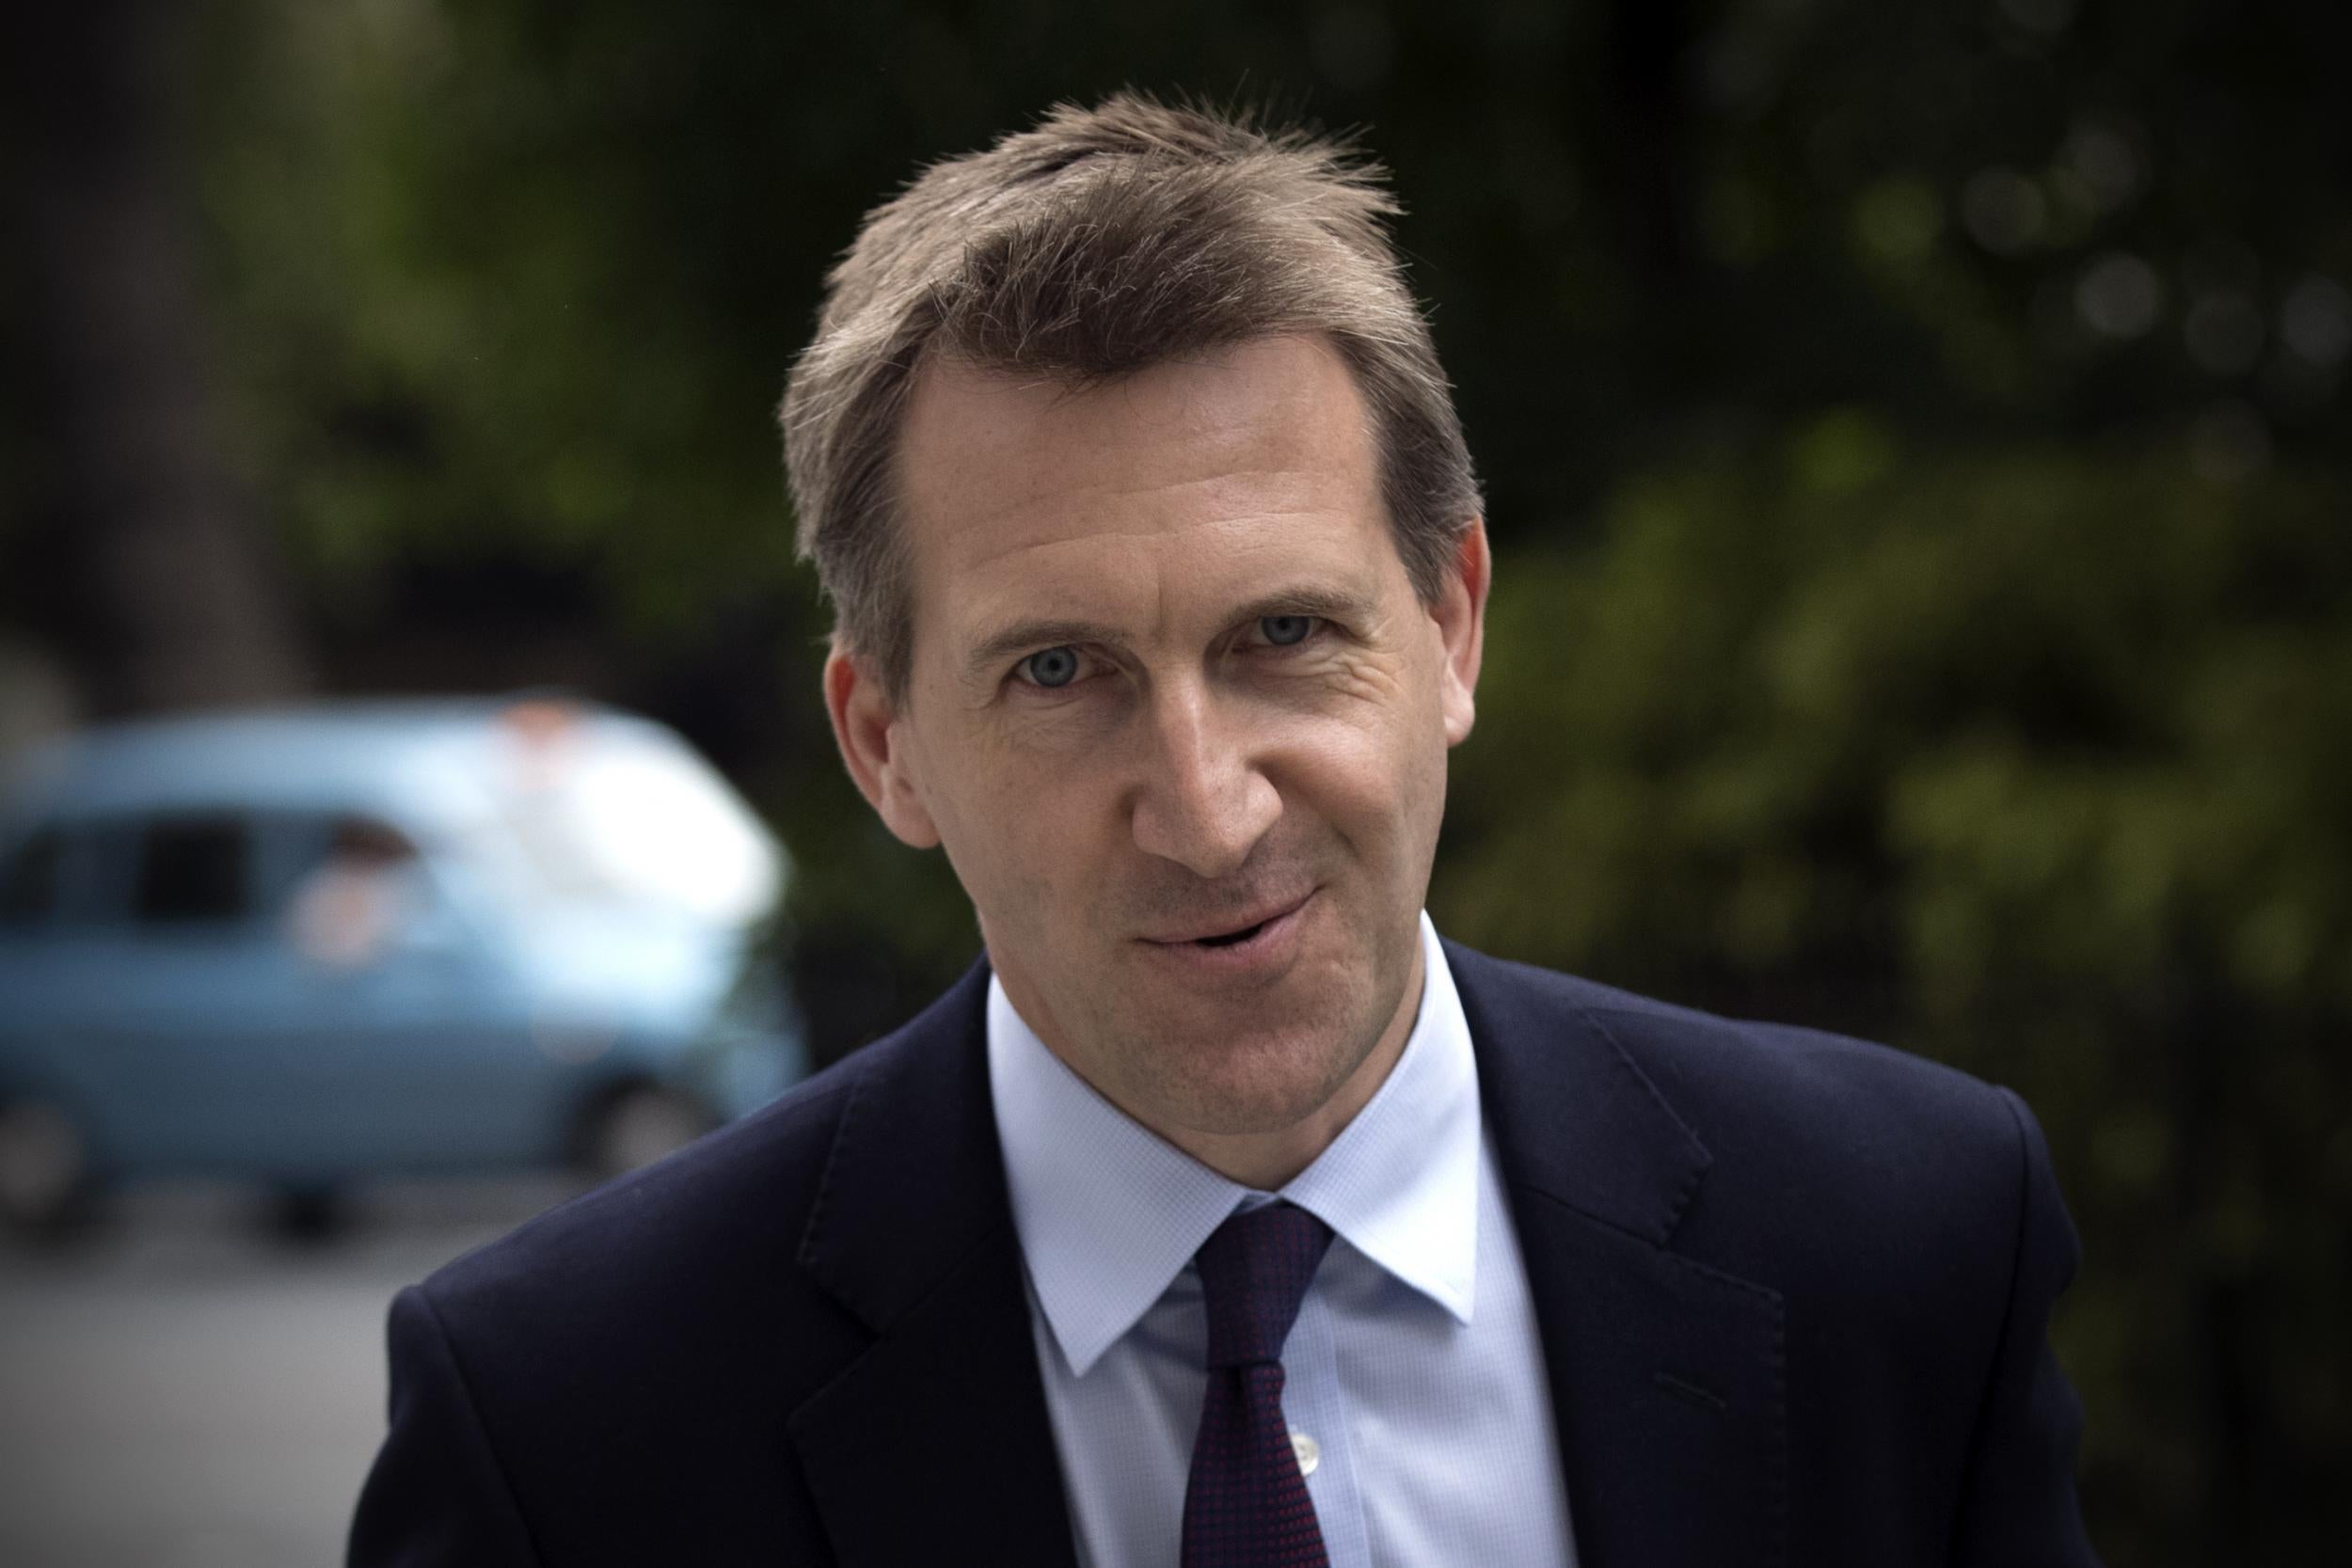 labour select dan jarvis mp as sheffield mayoral candidate raising